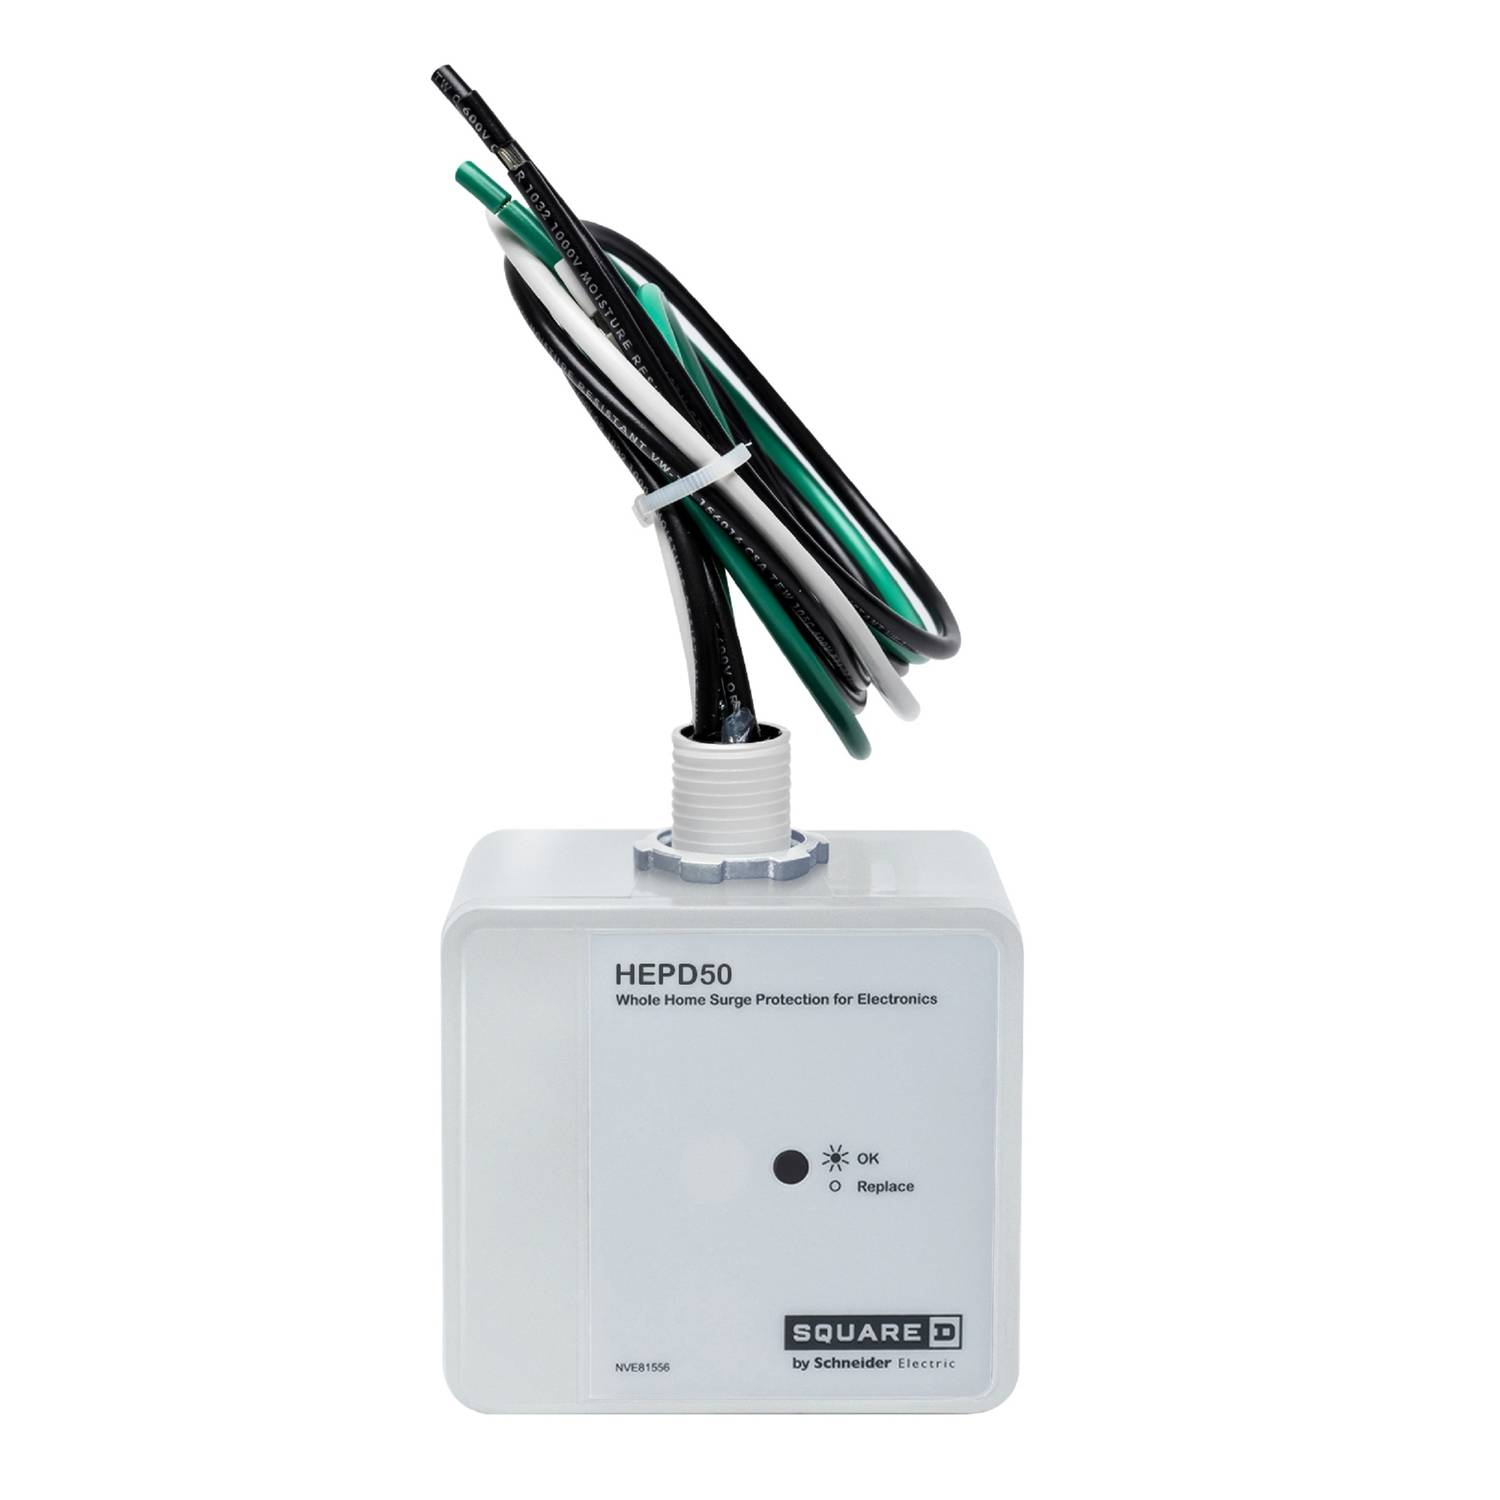 Square D Schneider Electric 200 amps Surge Home Electronics Protective Device